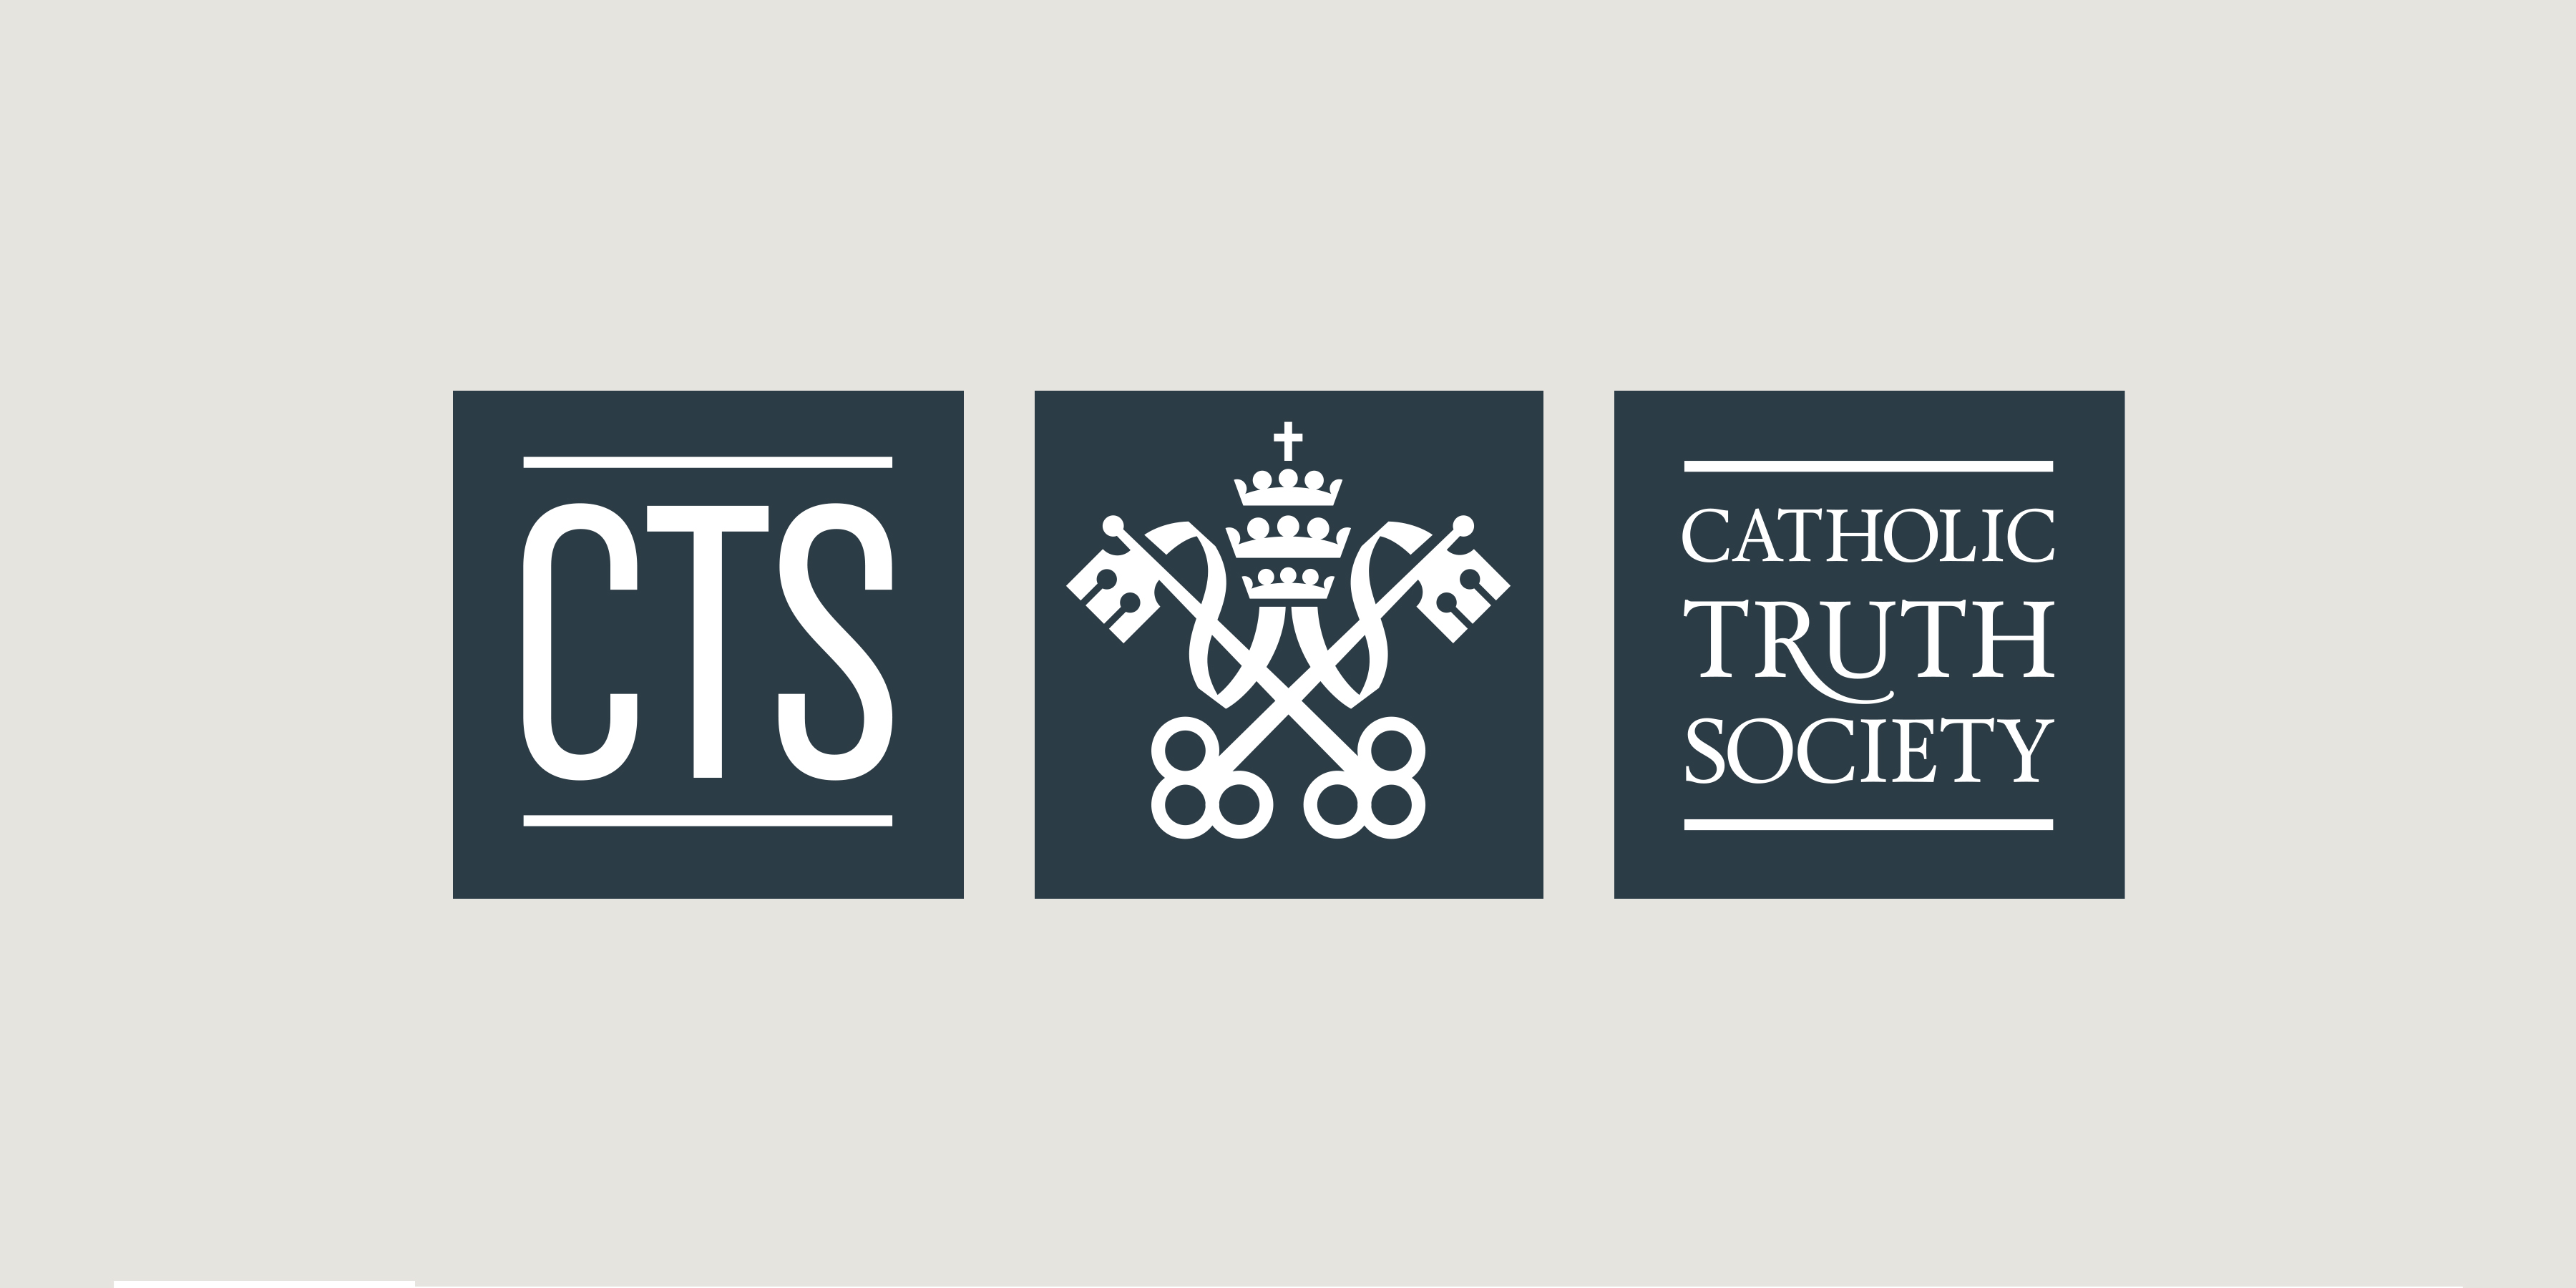 Catholic Truth Society logo